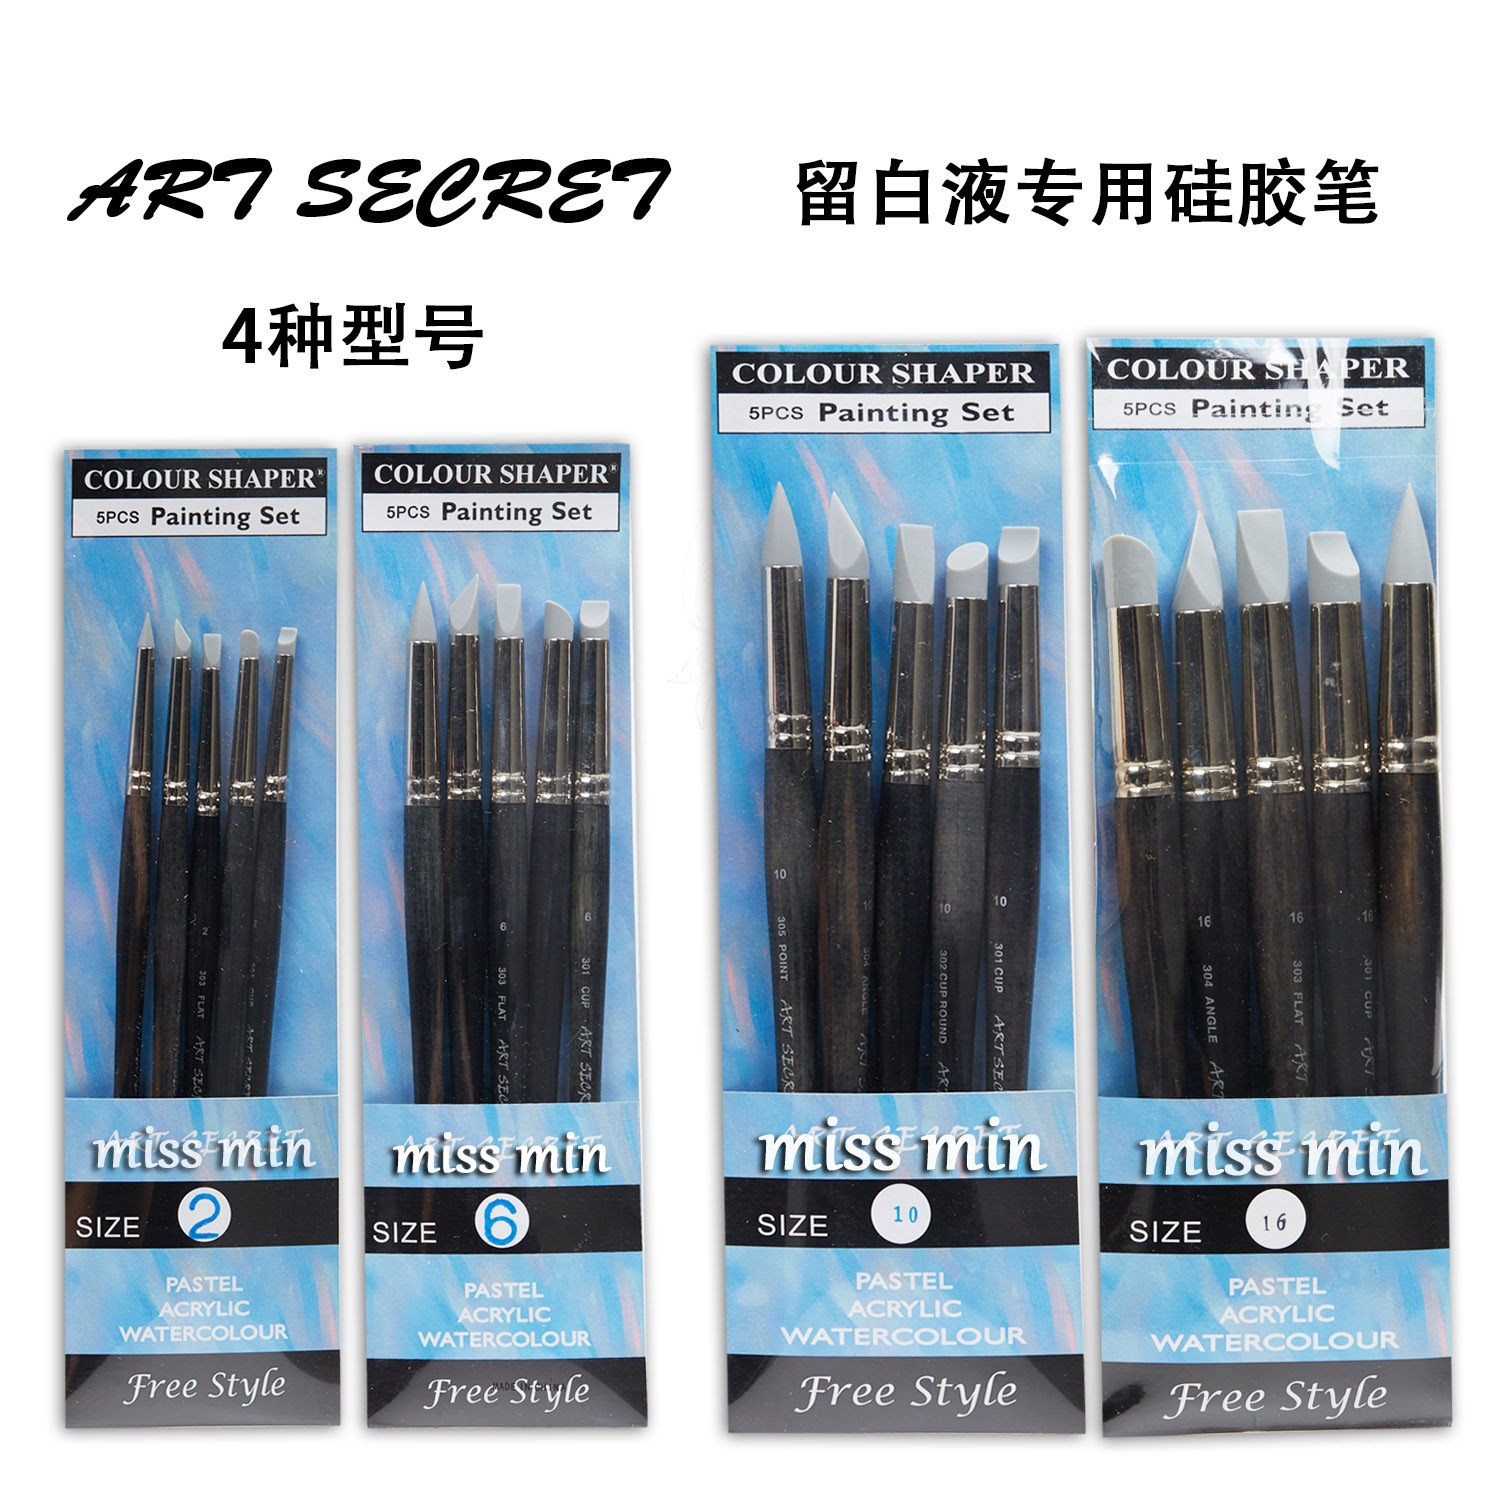 ART SECRET Silicone Head Brush Watercolor Whitening Special Silicone Pen Five Pack